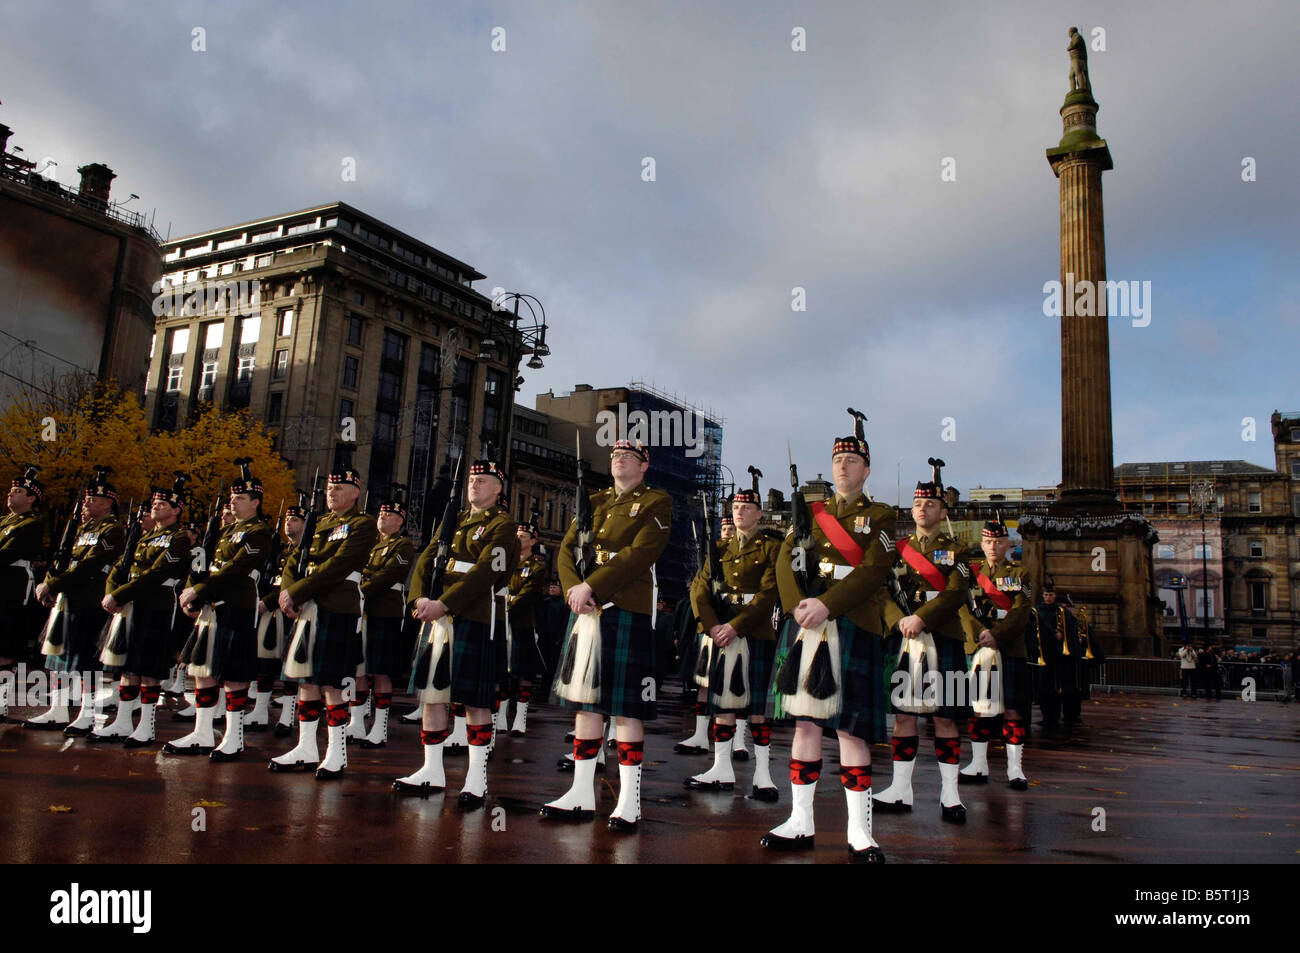 Remembrance day in George Sq Glasgow commemorating Britain s war dead on Remembrance Sunday - Stock Image